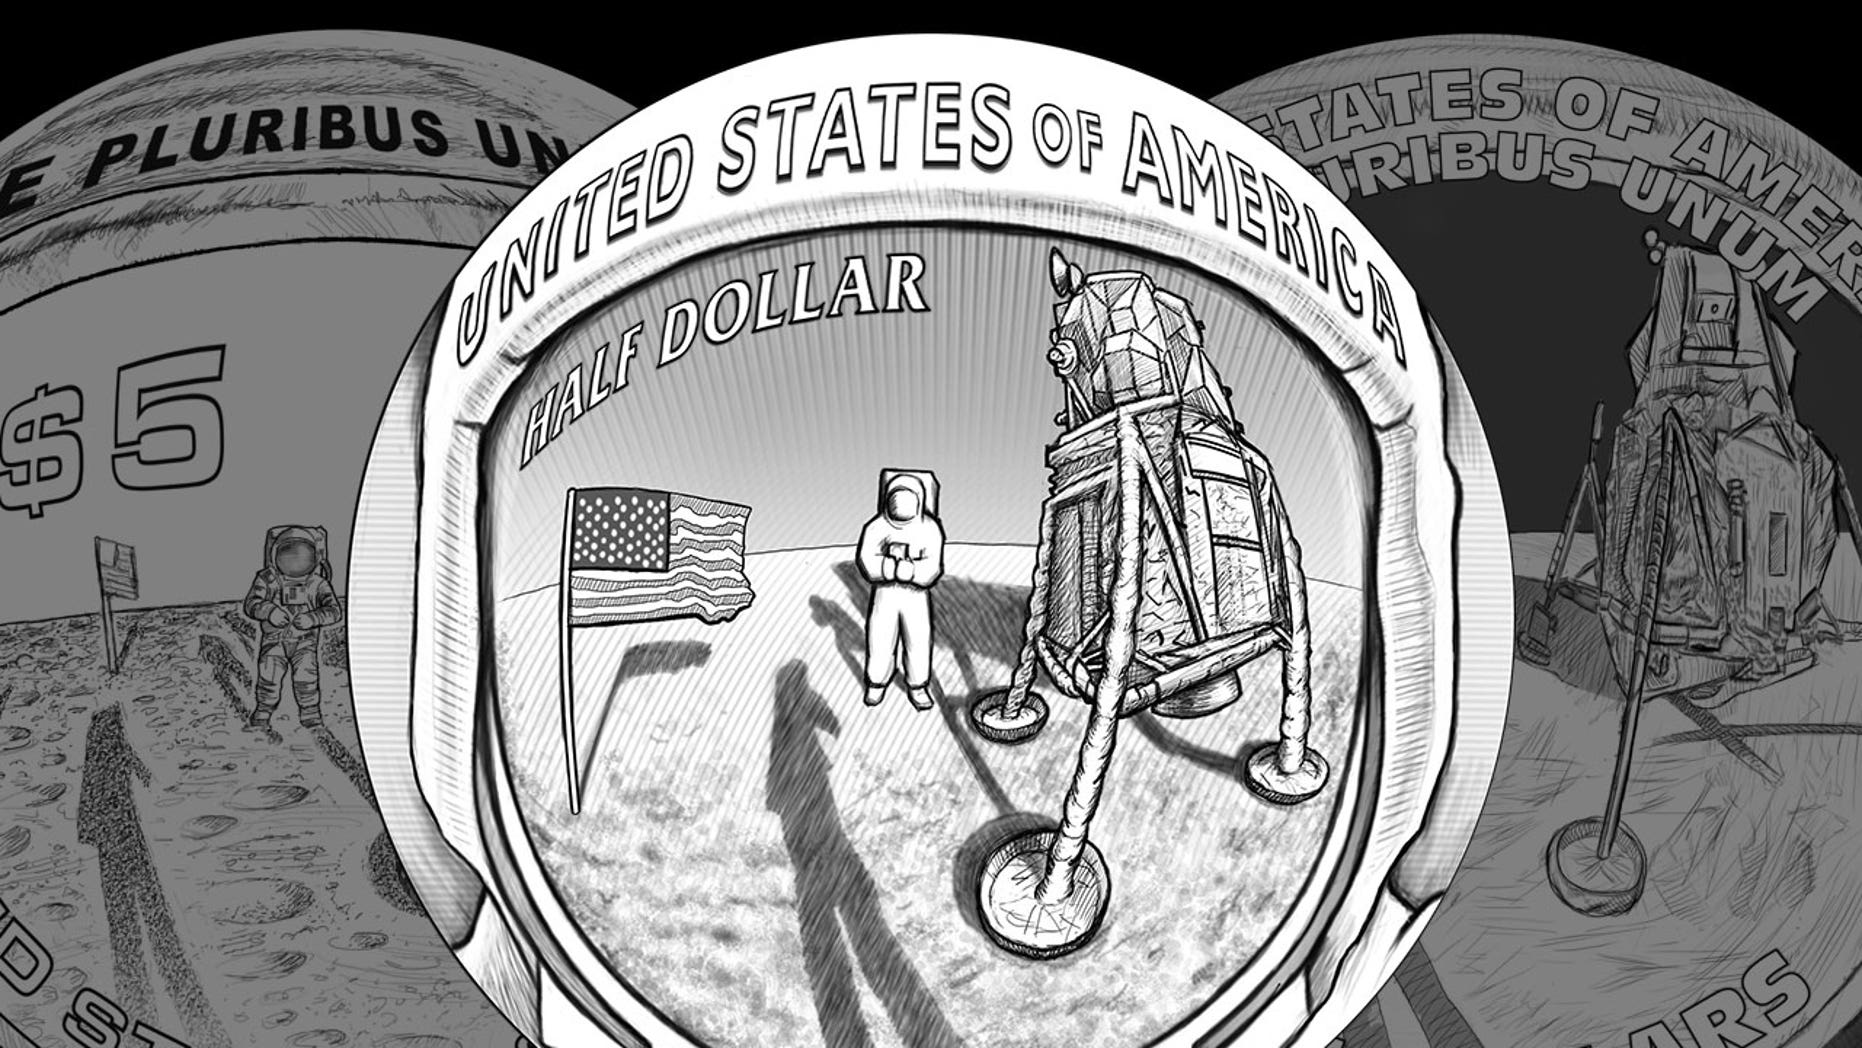 The U.S. Mint has revealed its three designs for the reverse or tails side of its 2019 curved coins commemorating the 50th anniversary of the Apollo 11 moon landing. The central design above (R-03) is preferred by NASA and the Commission of Fine Arts.